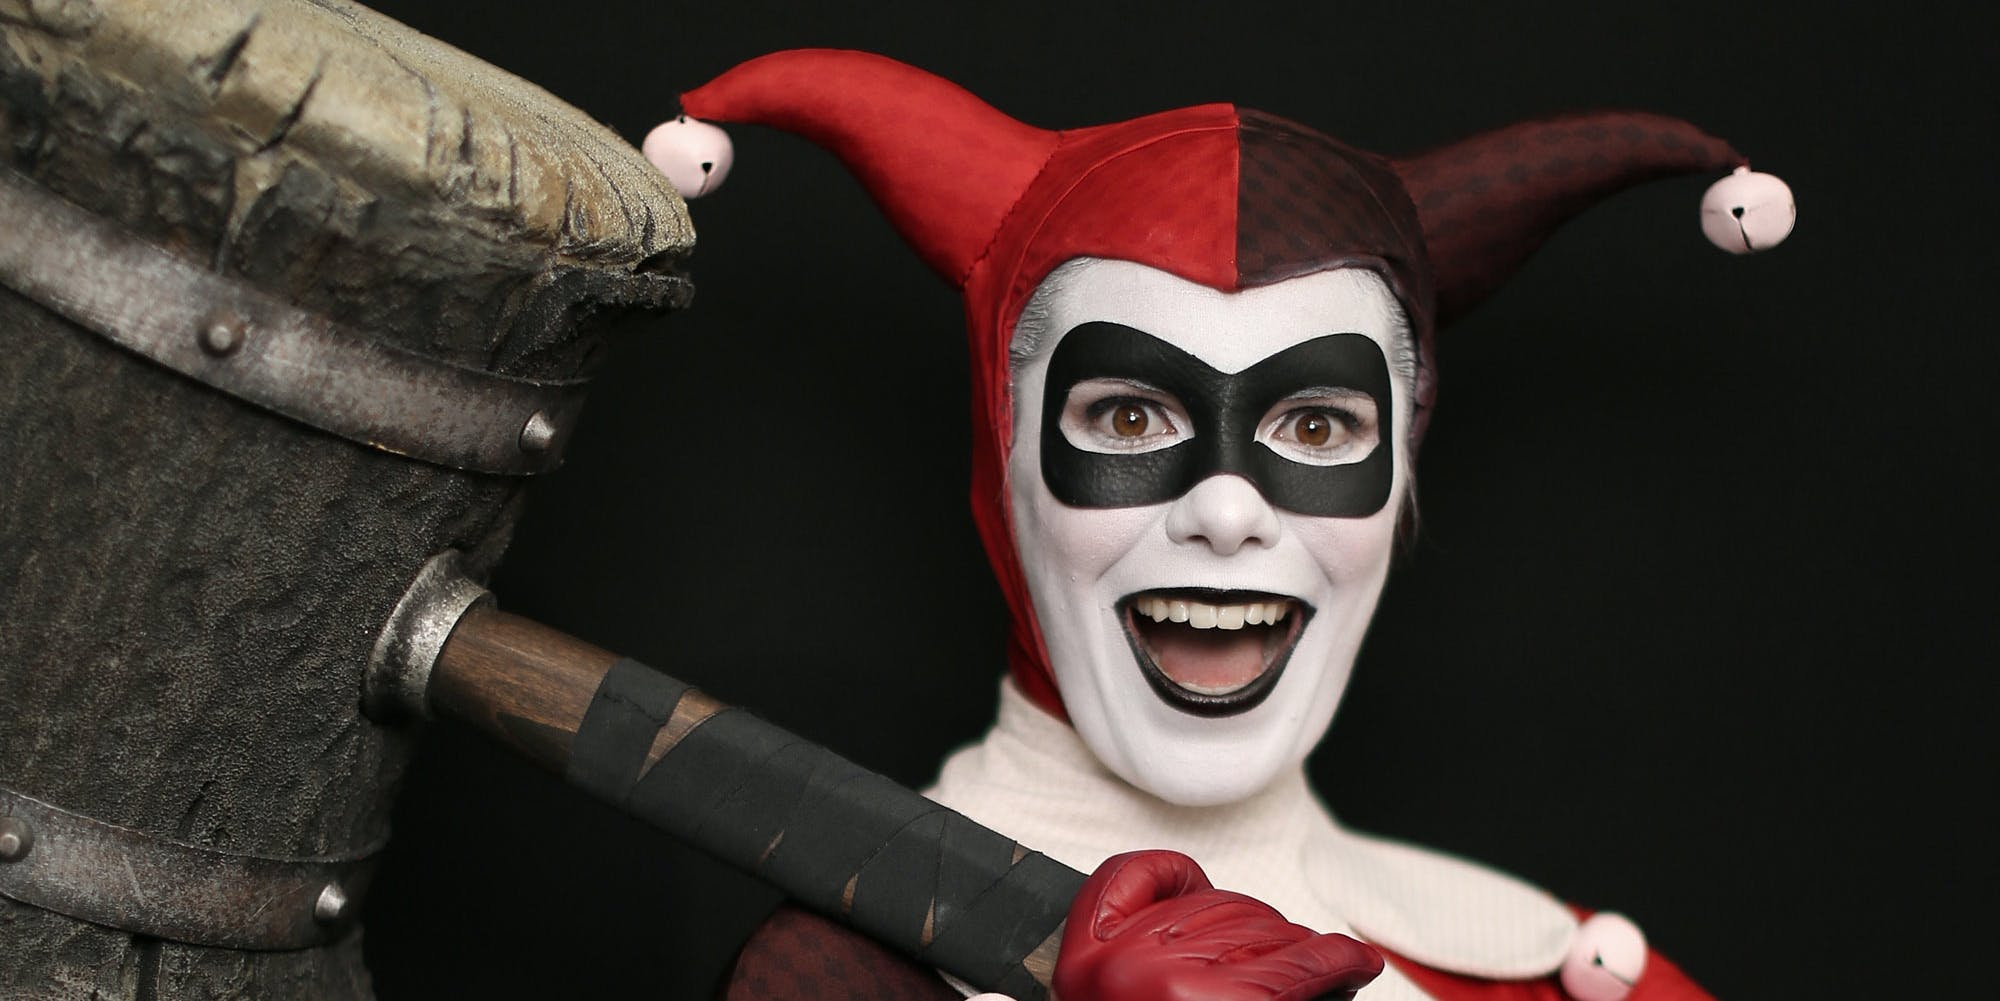 Harley Quinn cosplay went from rare to ubiquitous in 2016, but not everyone dressed as the movie character.